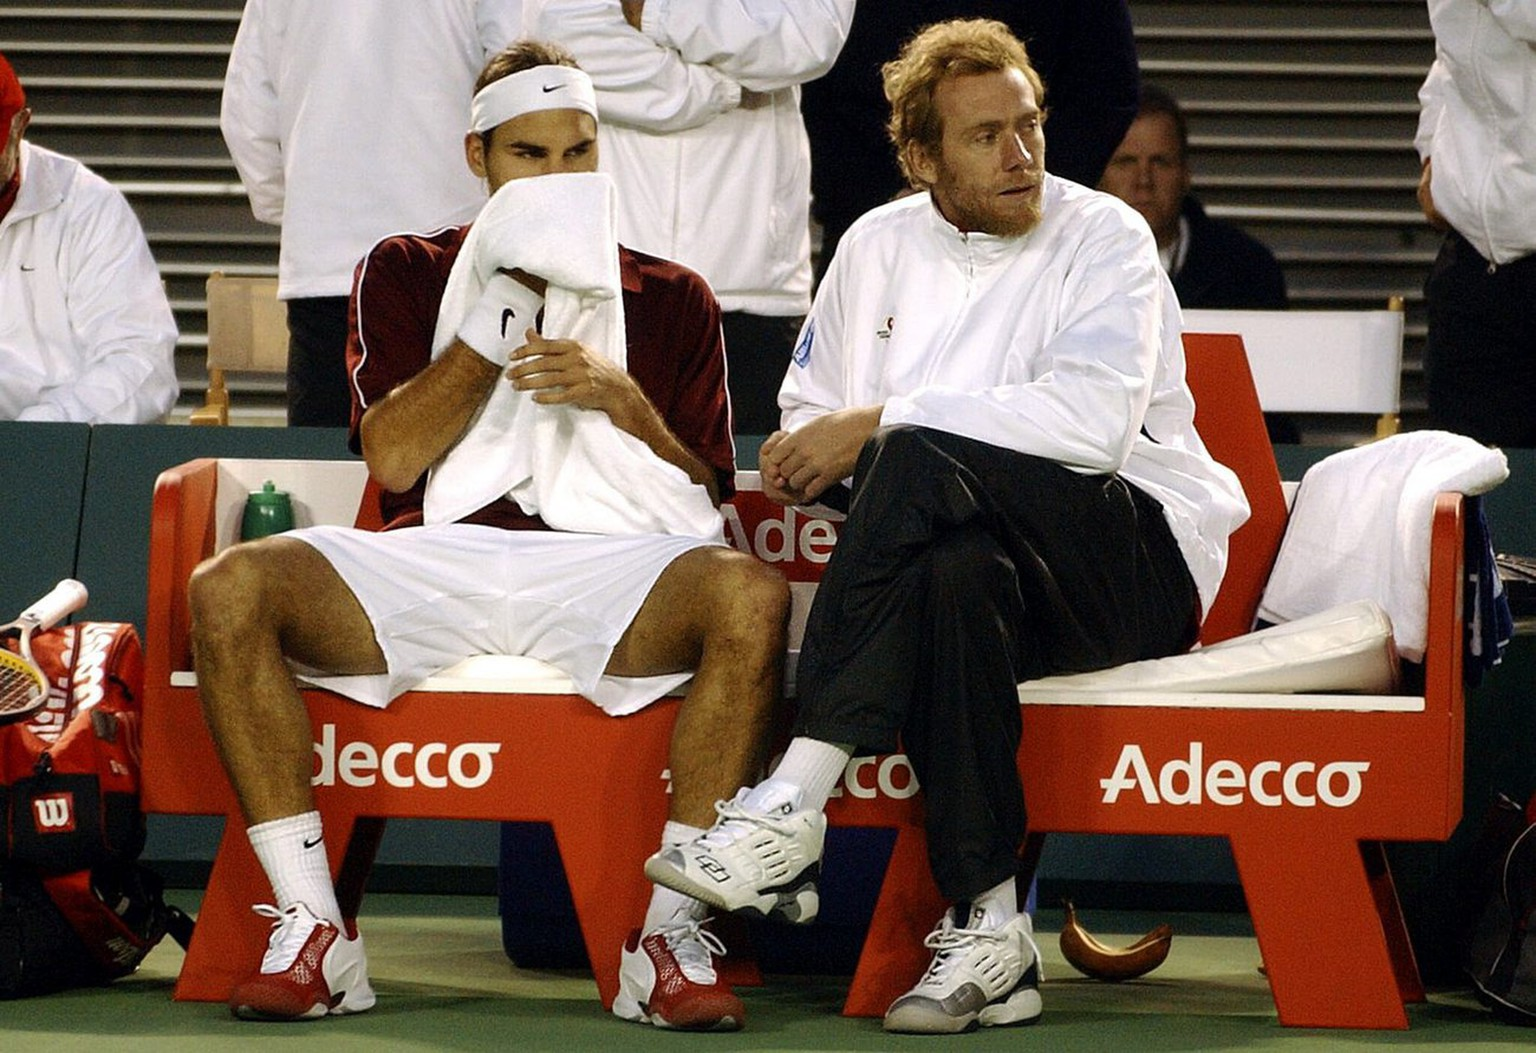 Switzerland's Roger Federer (L) and team captain Marc Rosset show the pressure of the fourth tie of the Davis Cup semi-final at Rod Laver Arena in Melbourne, Sunday 21 September 2003. Federer was defeated by Australia's Lleyton Hewitt 7-5, 6-2, 6-7, 6-7 and 1-6. (KEYSTONE/EPA Photo  AAP/Julien Smith) === AUSTRALIA AND NEW ZEALAND OUT ===